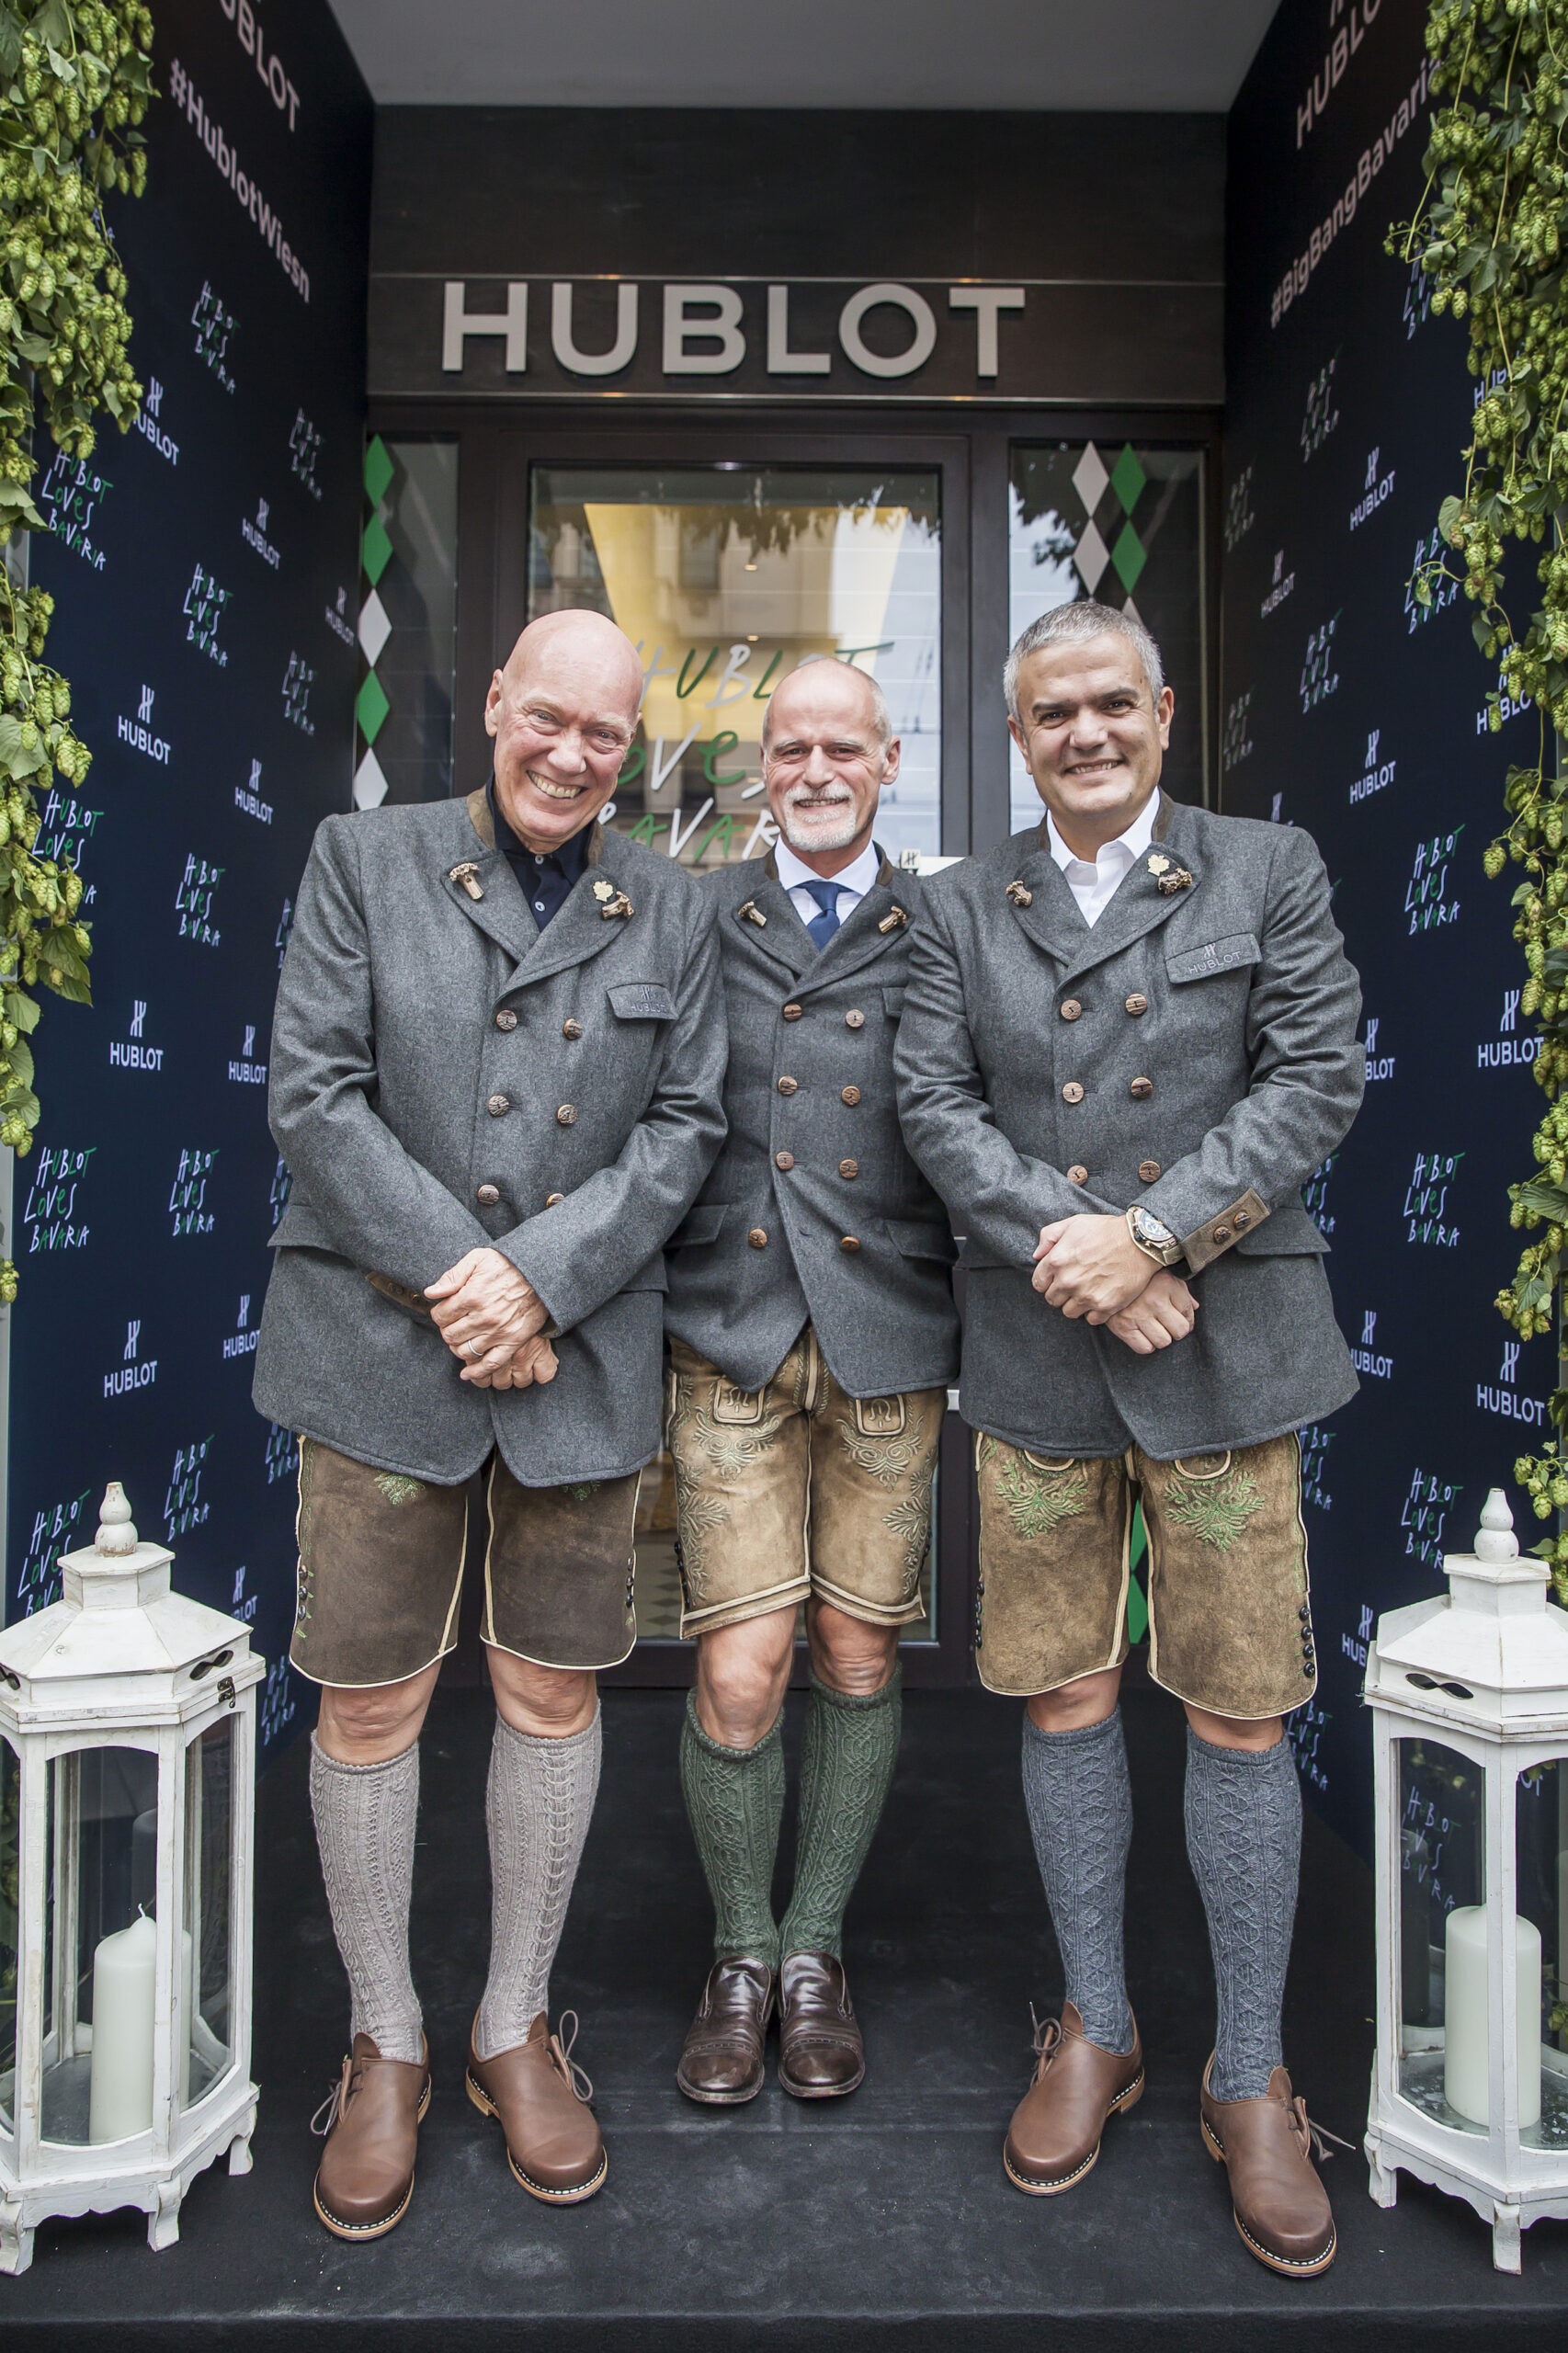 Jean-Claude Biver, Markus Meindl and Ricardo Guadaloupe wearing a traditional jacket and Lederhosen